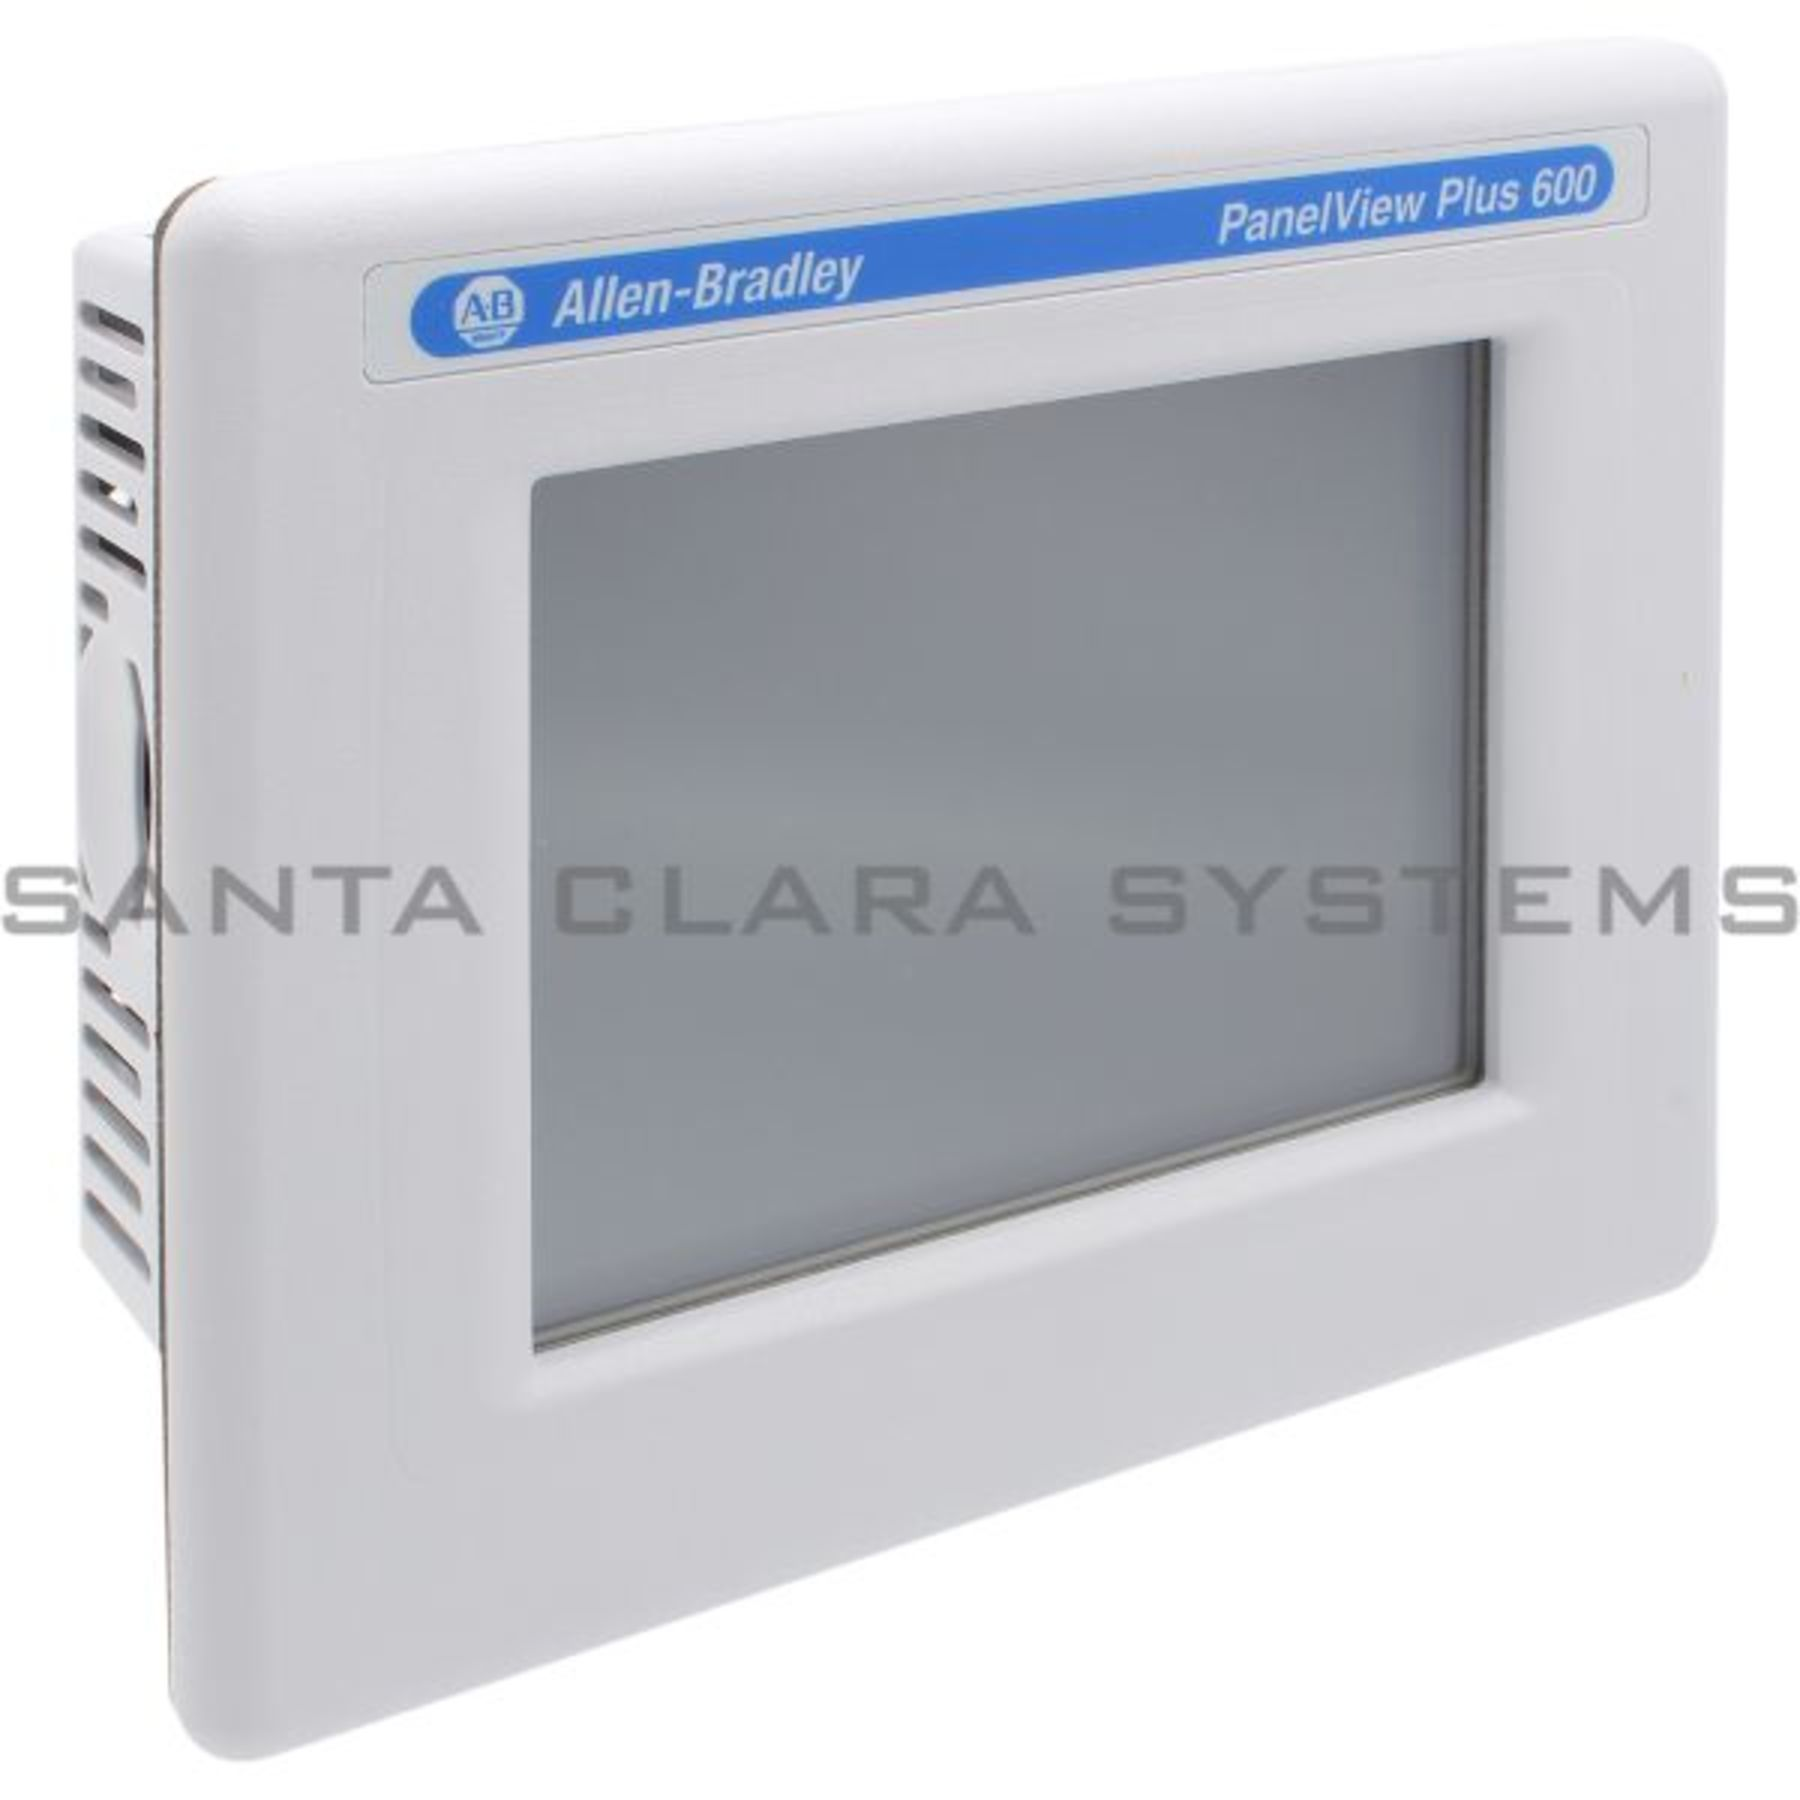 2711PC-T6C20D8 PanelView Plus Compact 600 In stock and ready